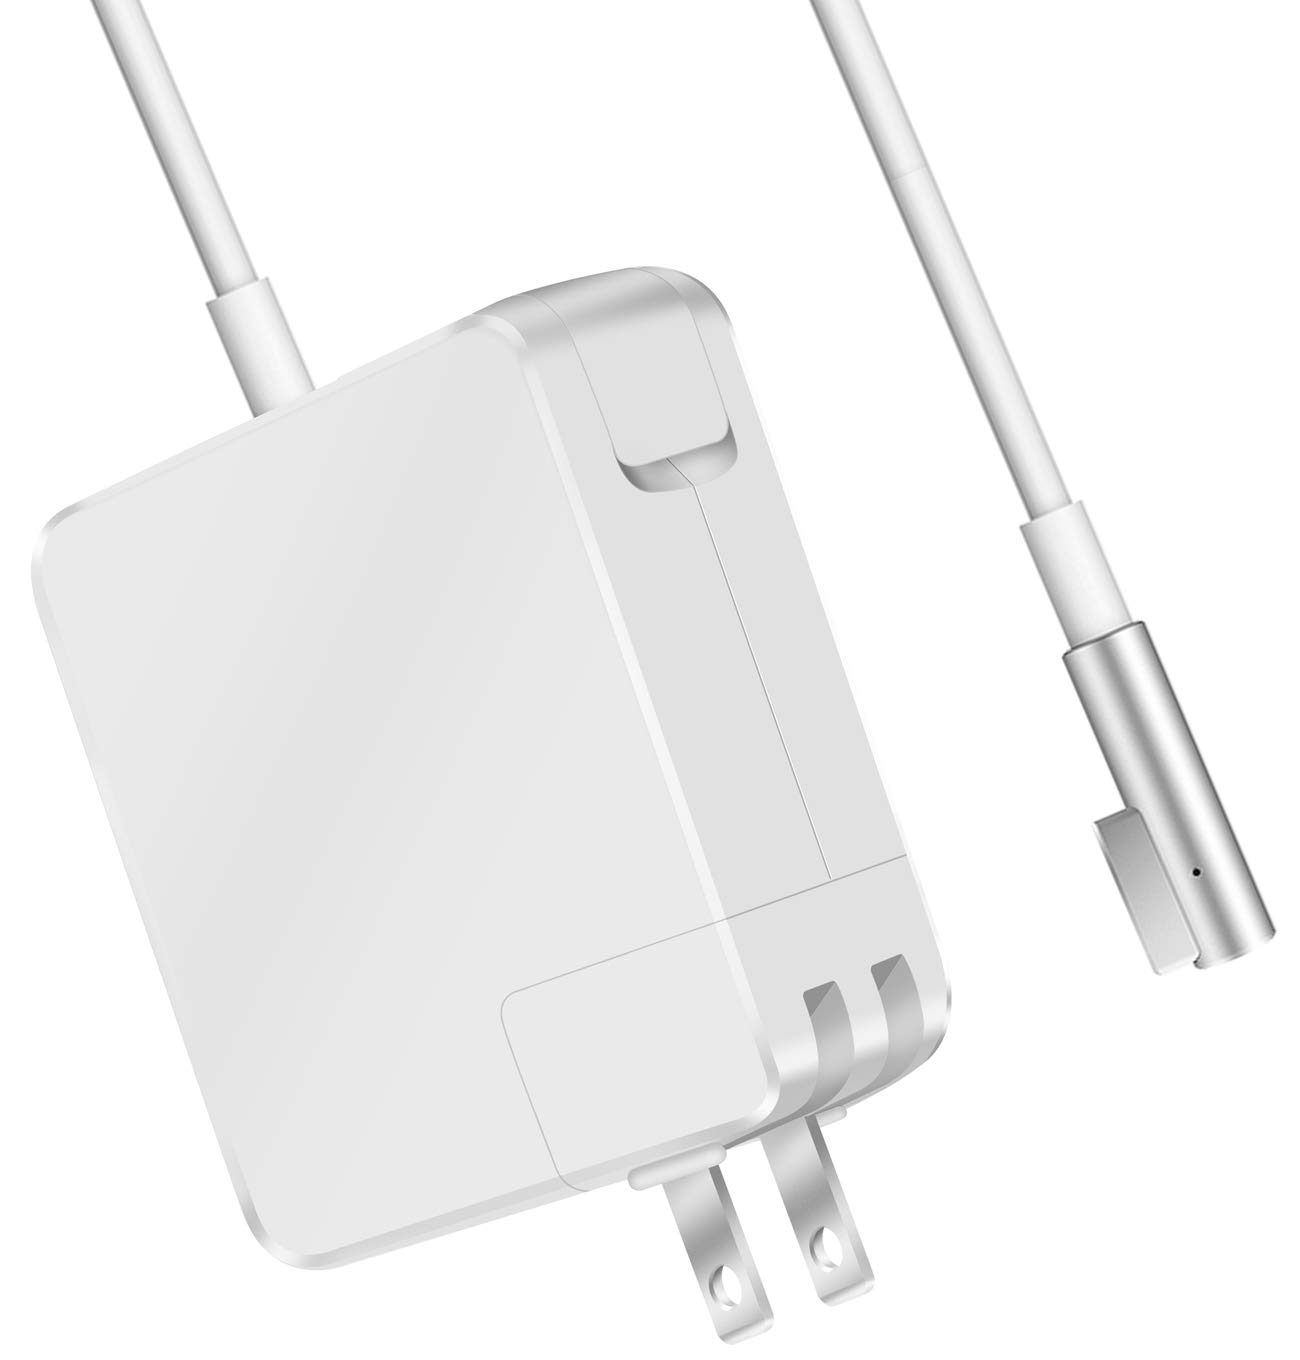 Mac Charger 60w Compatible with MacBook Pro Charger 60w Magsafe 1 60w Power Adapter Mac Charger Replacement for MacBook Pro 11 13 inch(60w magsafe 1) by Wallin